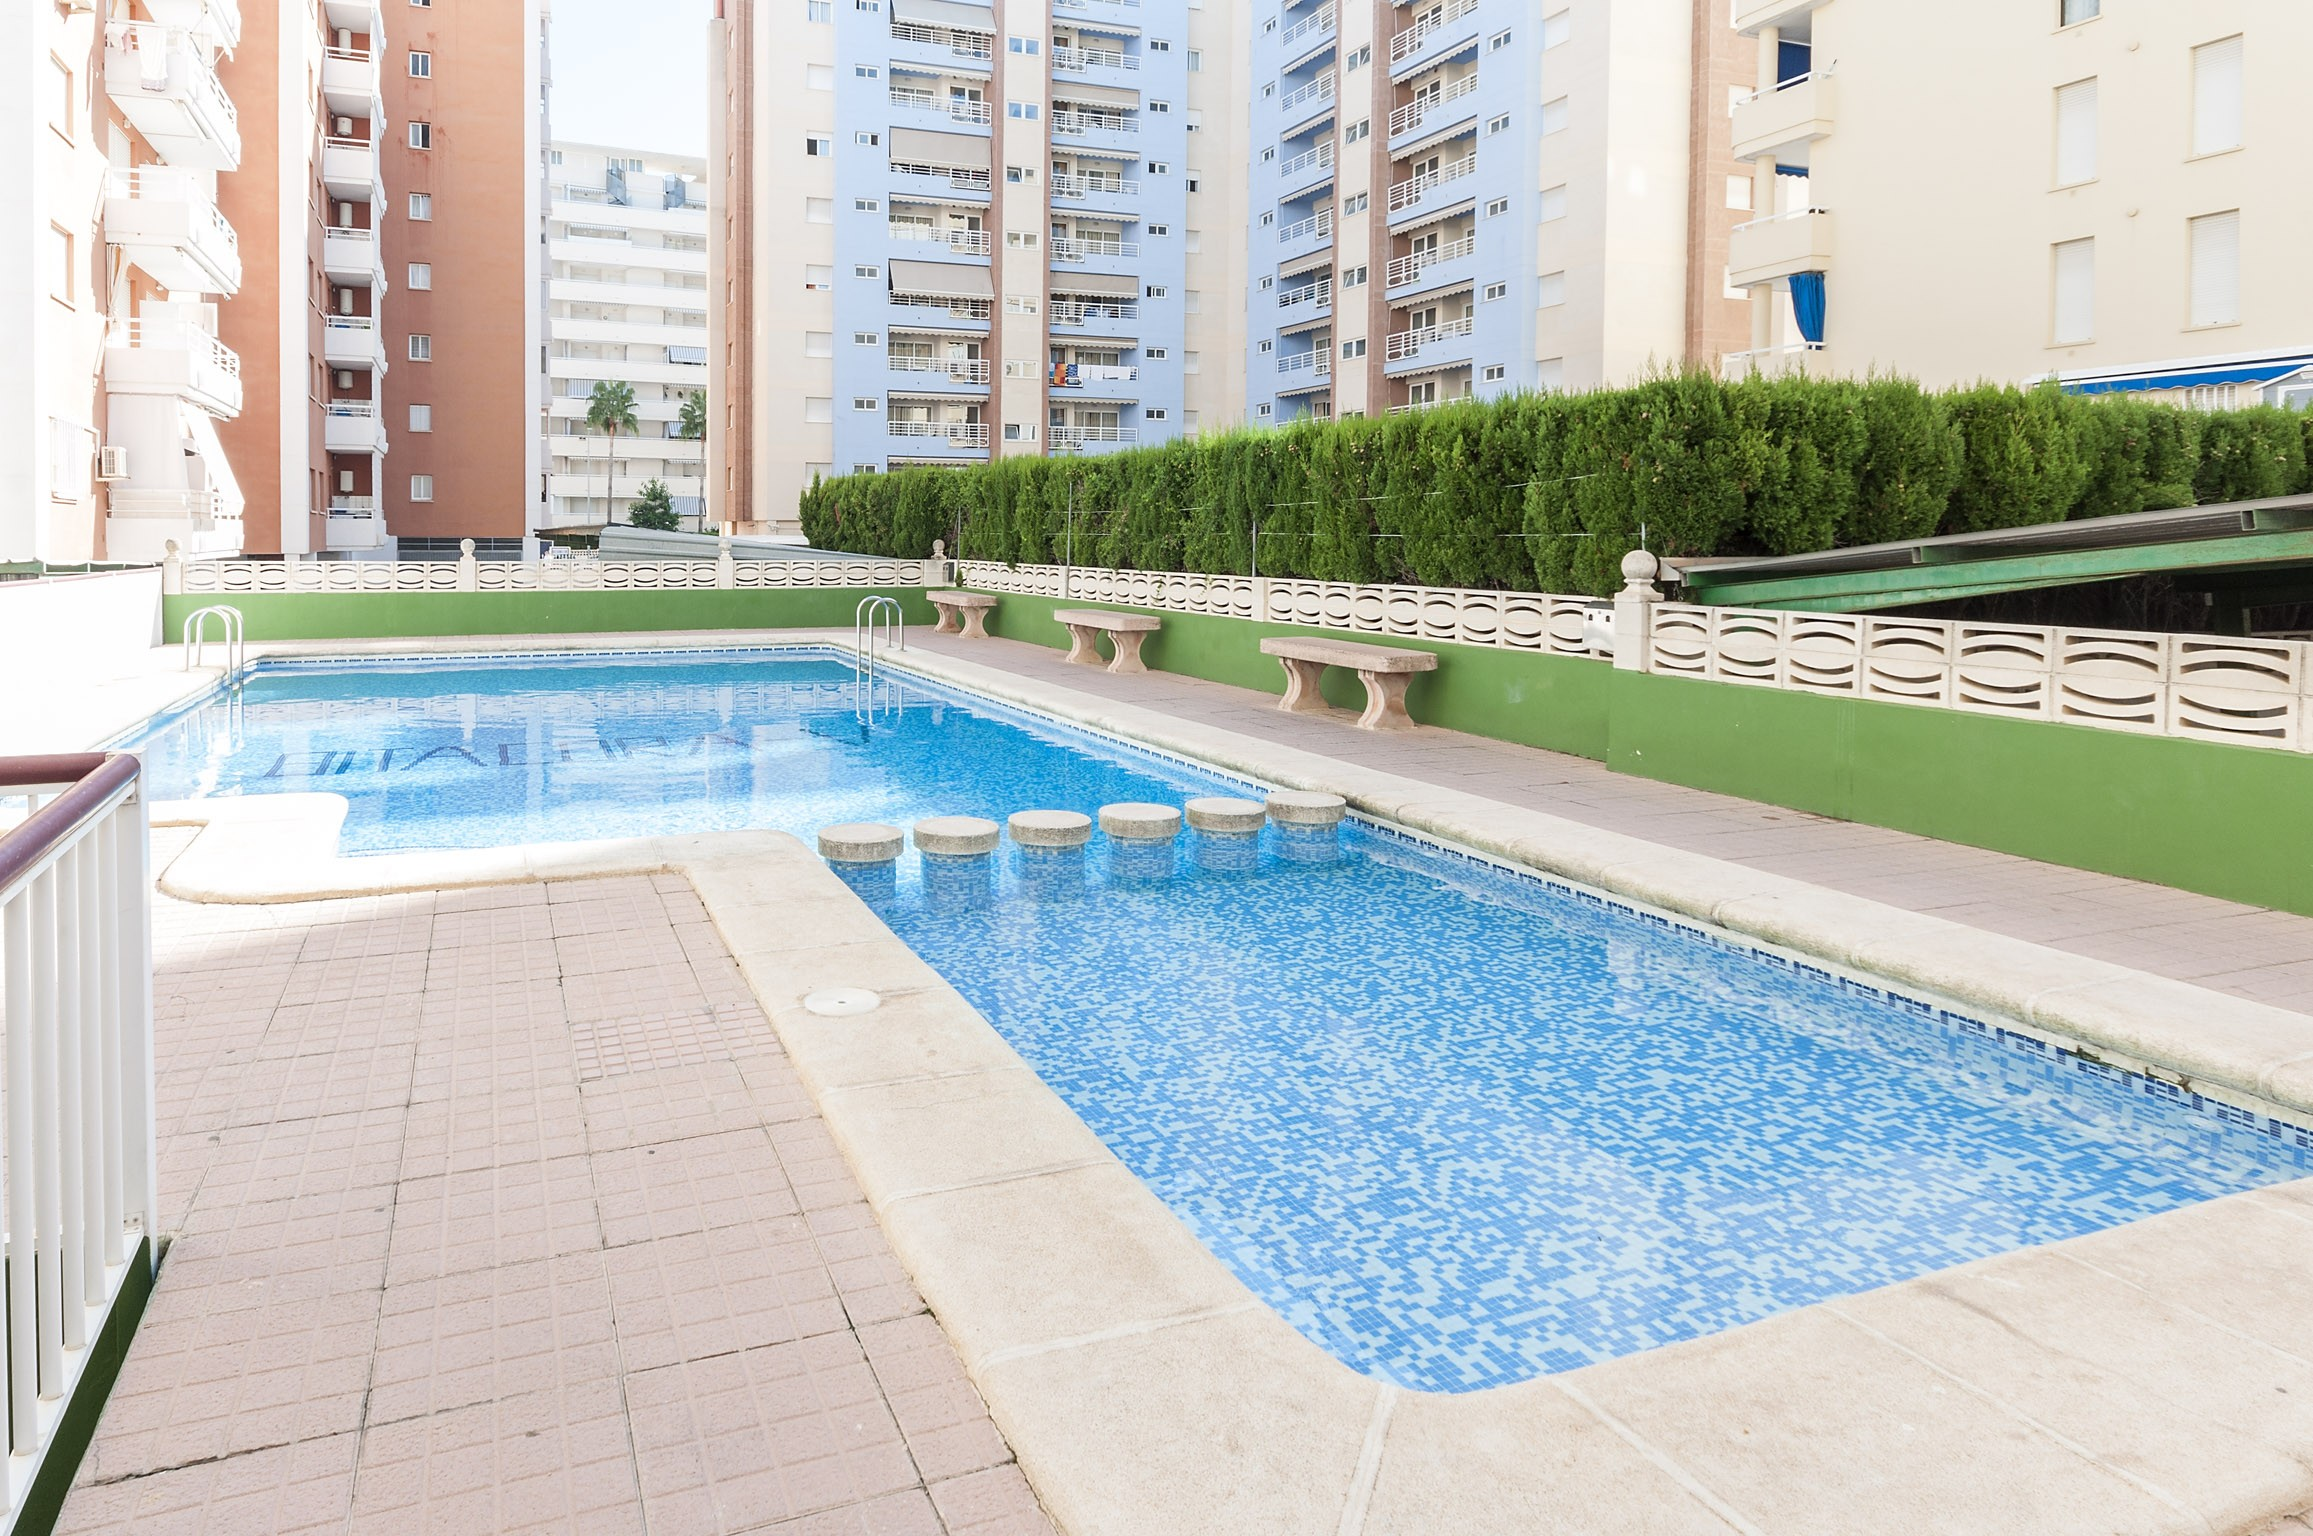 Featuring A Shared Outdoor Pool, This Cozy Apartment In Playa De Gandia Can  Comfortably Accommodate 2   4 People. After A Nice Day On The Beach, ...